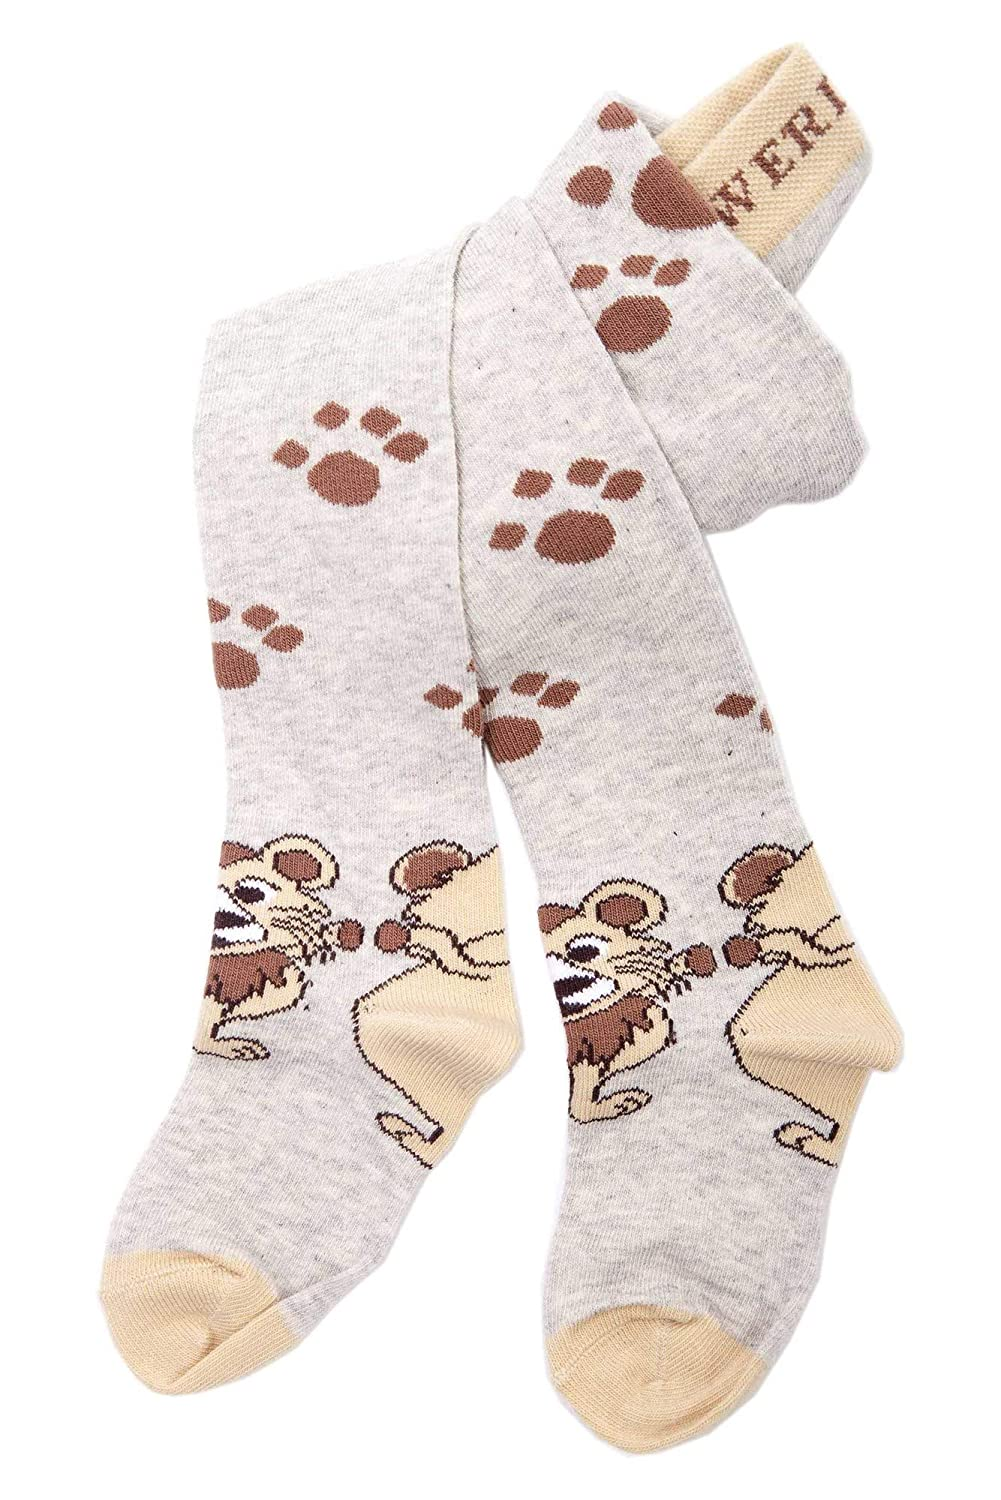 Weri Spezials Baby and Children Tights, Funny Lions in Grey